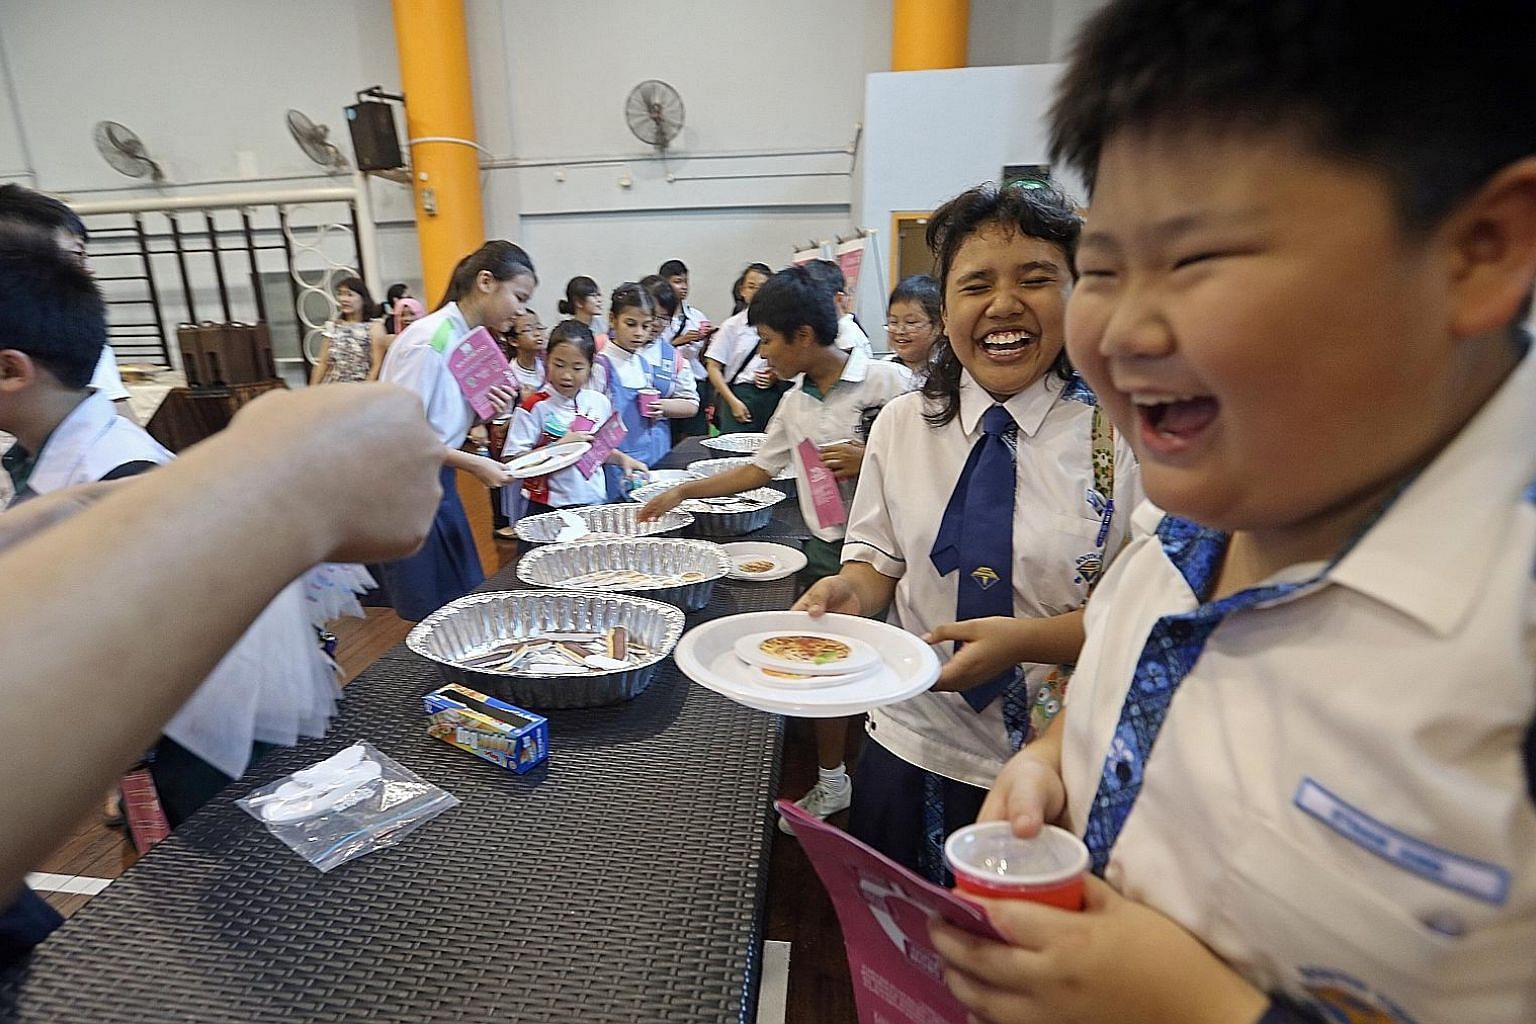 Ethan Ang and Siti Syazwana of South View Primary School, both 11, participating in a game at a station on the educational trail yesterday. The simulated buffet highlights the importance of not wasting food.